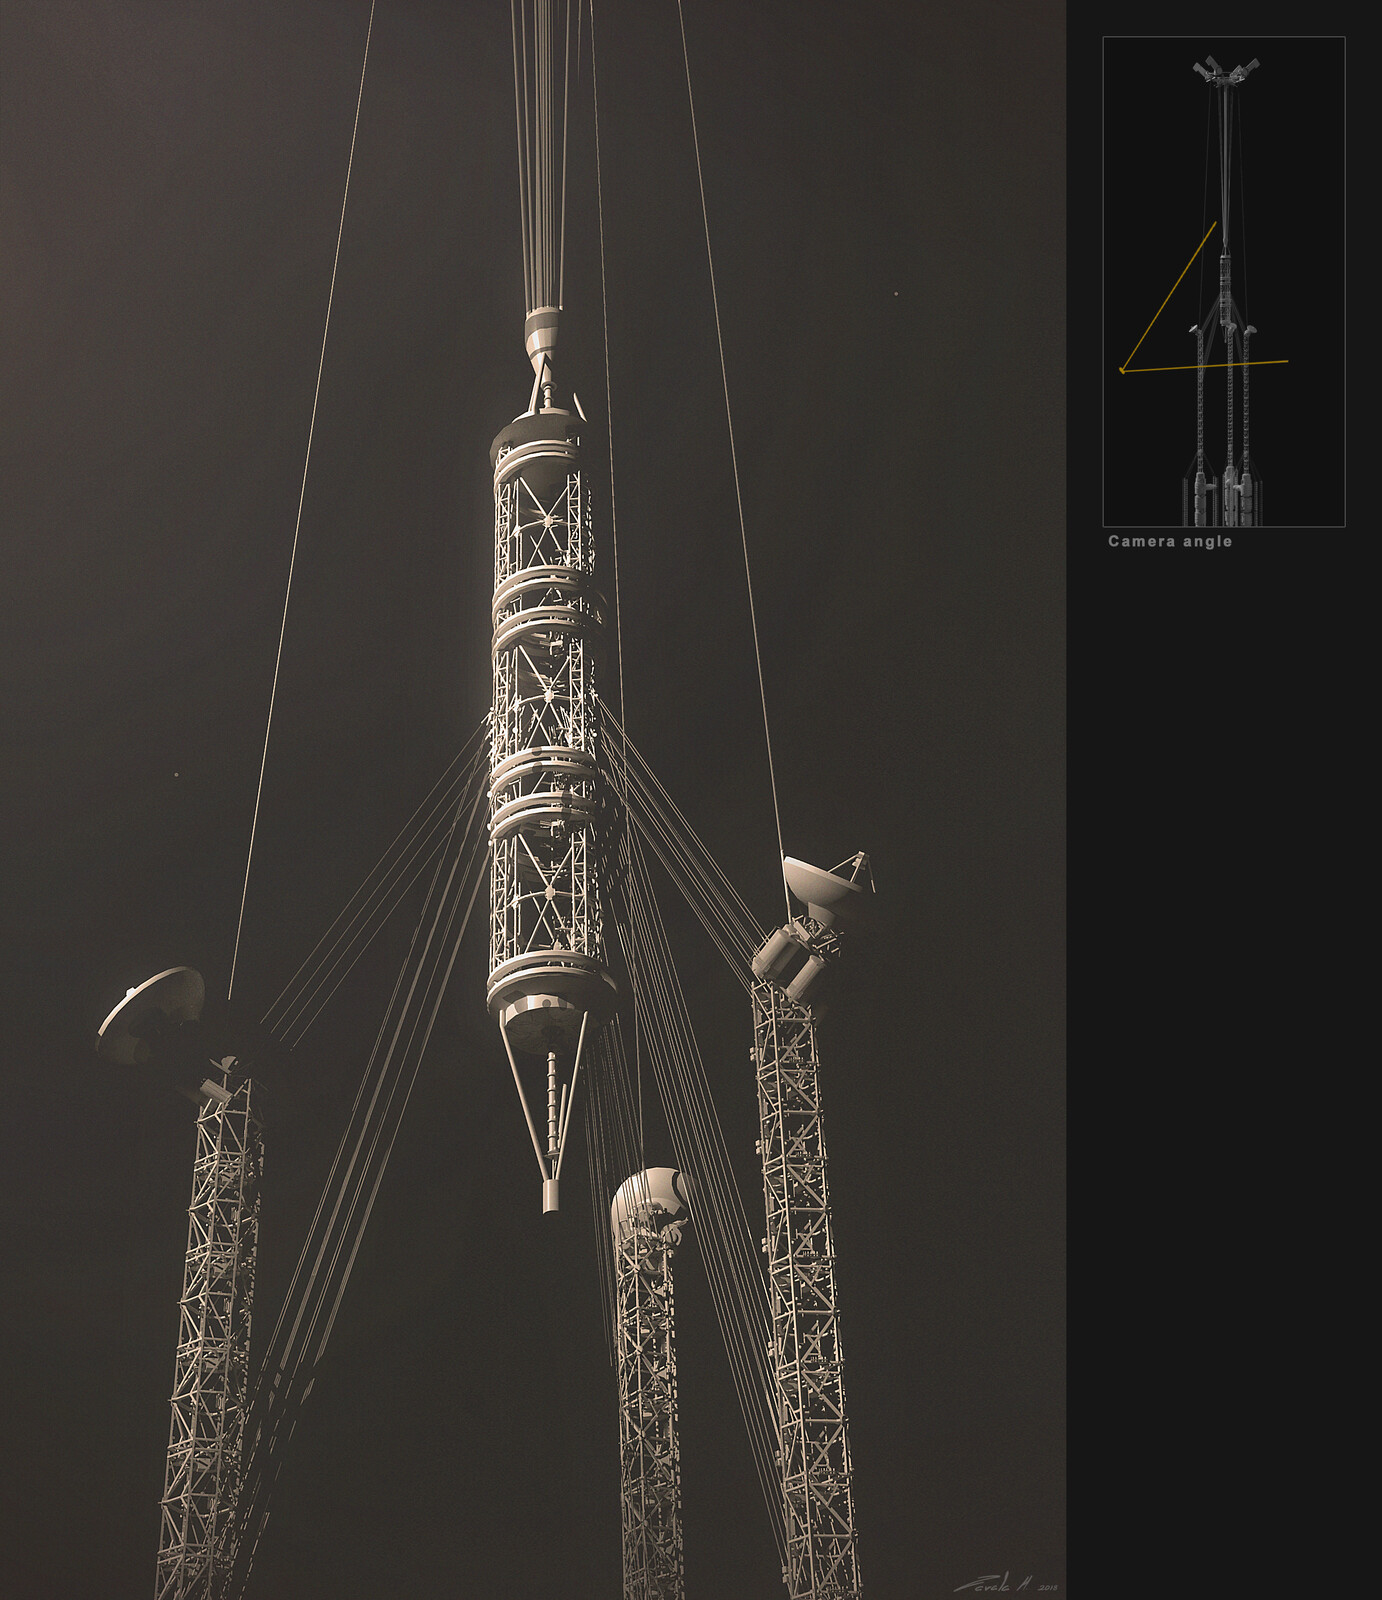 Notice the three basic antennas that ended up being the top of the structure in the final version.